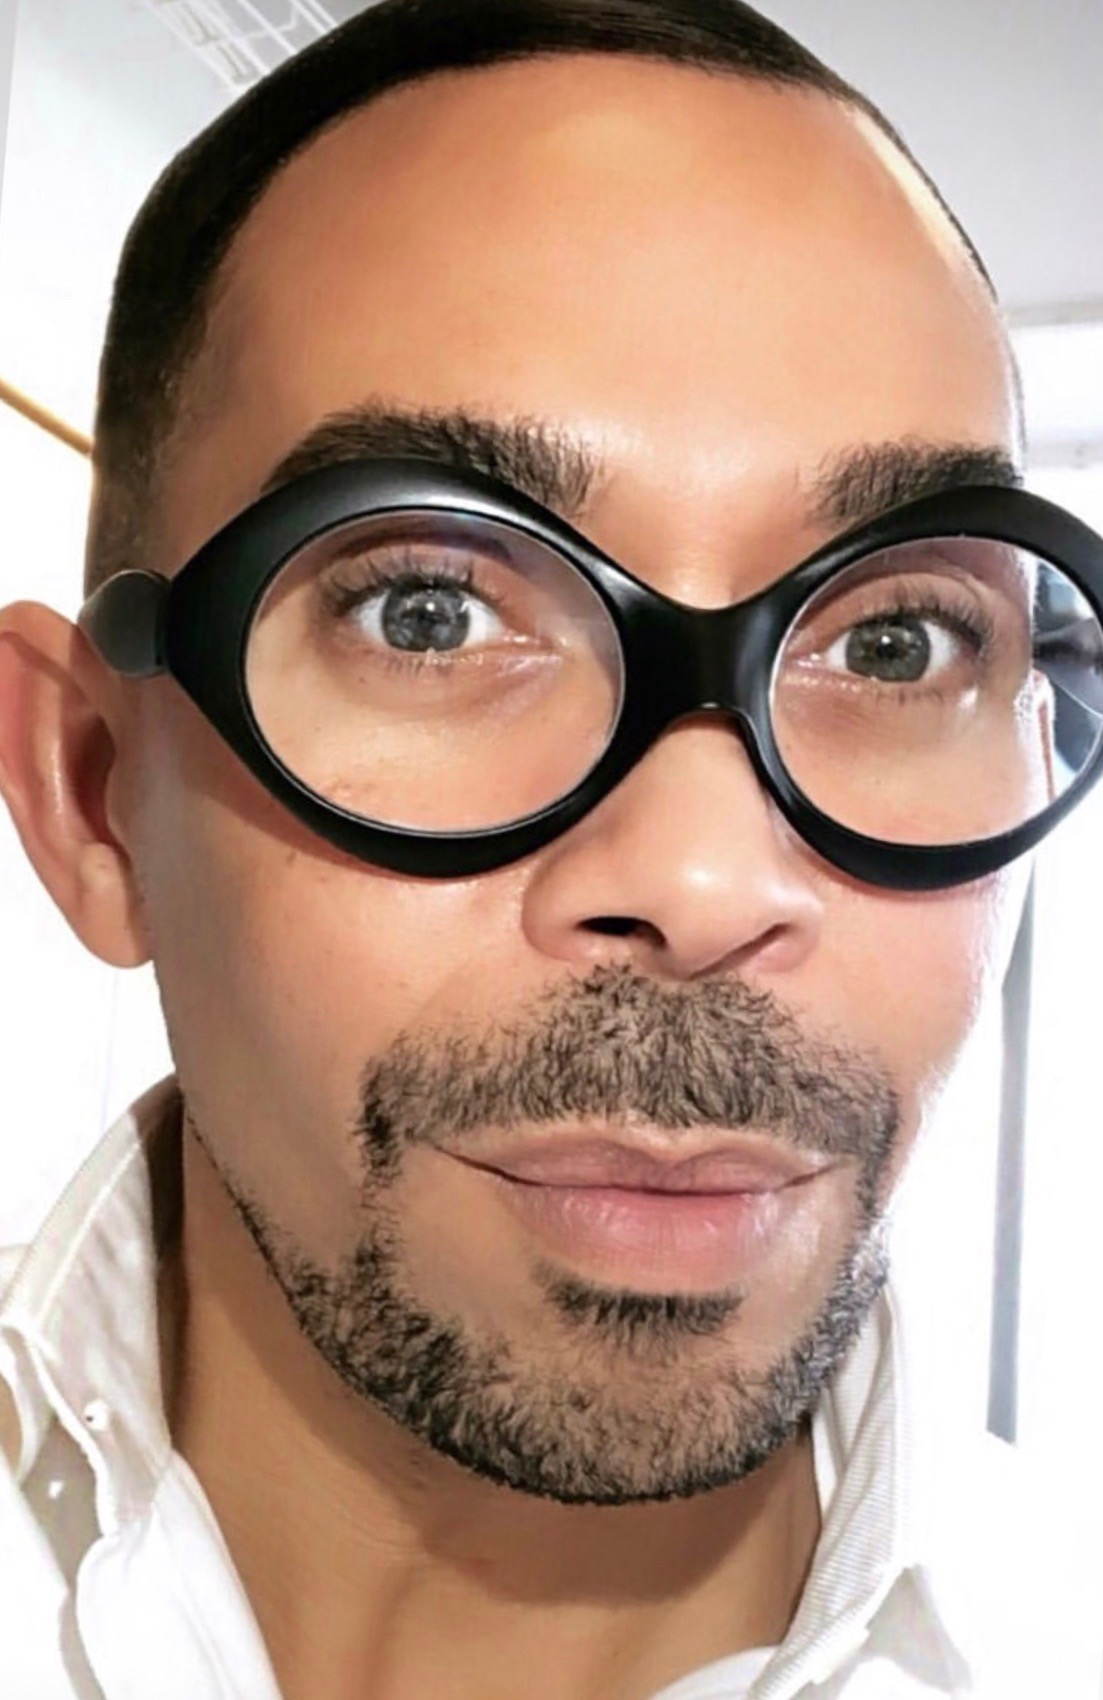 Romero - Jennings is the Director of Makeup, M·A·C Cosmetics. Follow him here!